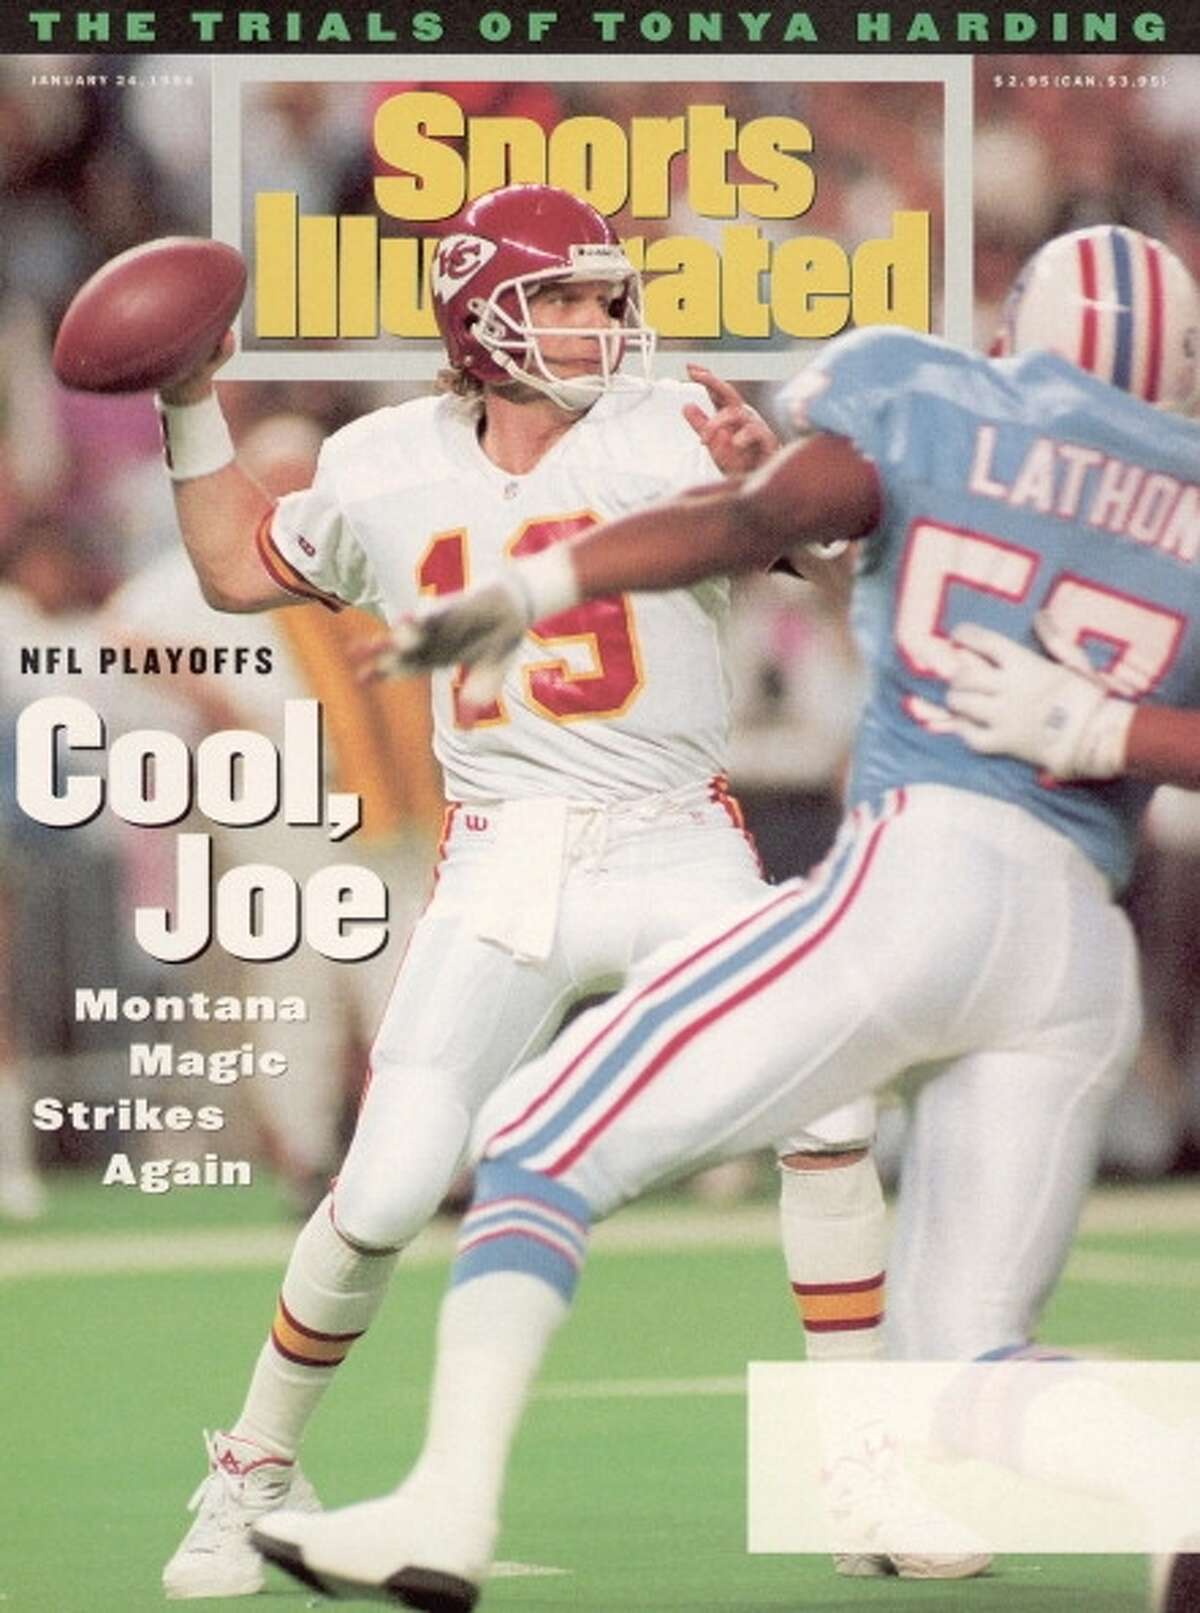 What life was like in 1994 The Kansas City Chiefs haven't won a playoff game since Jan. 16, 1994 -- a drought of more than 8,000 days. Their last win came in a 28-20 game against the Houston Oilers.